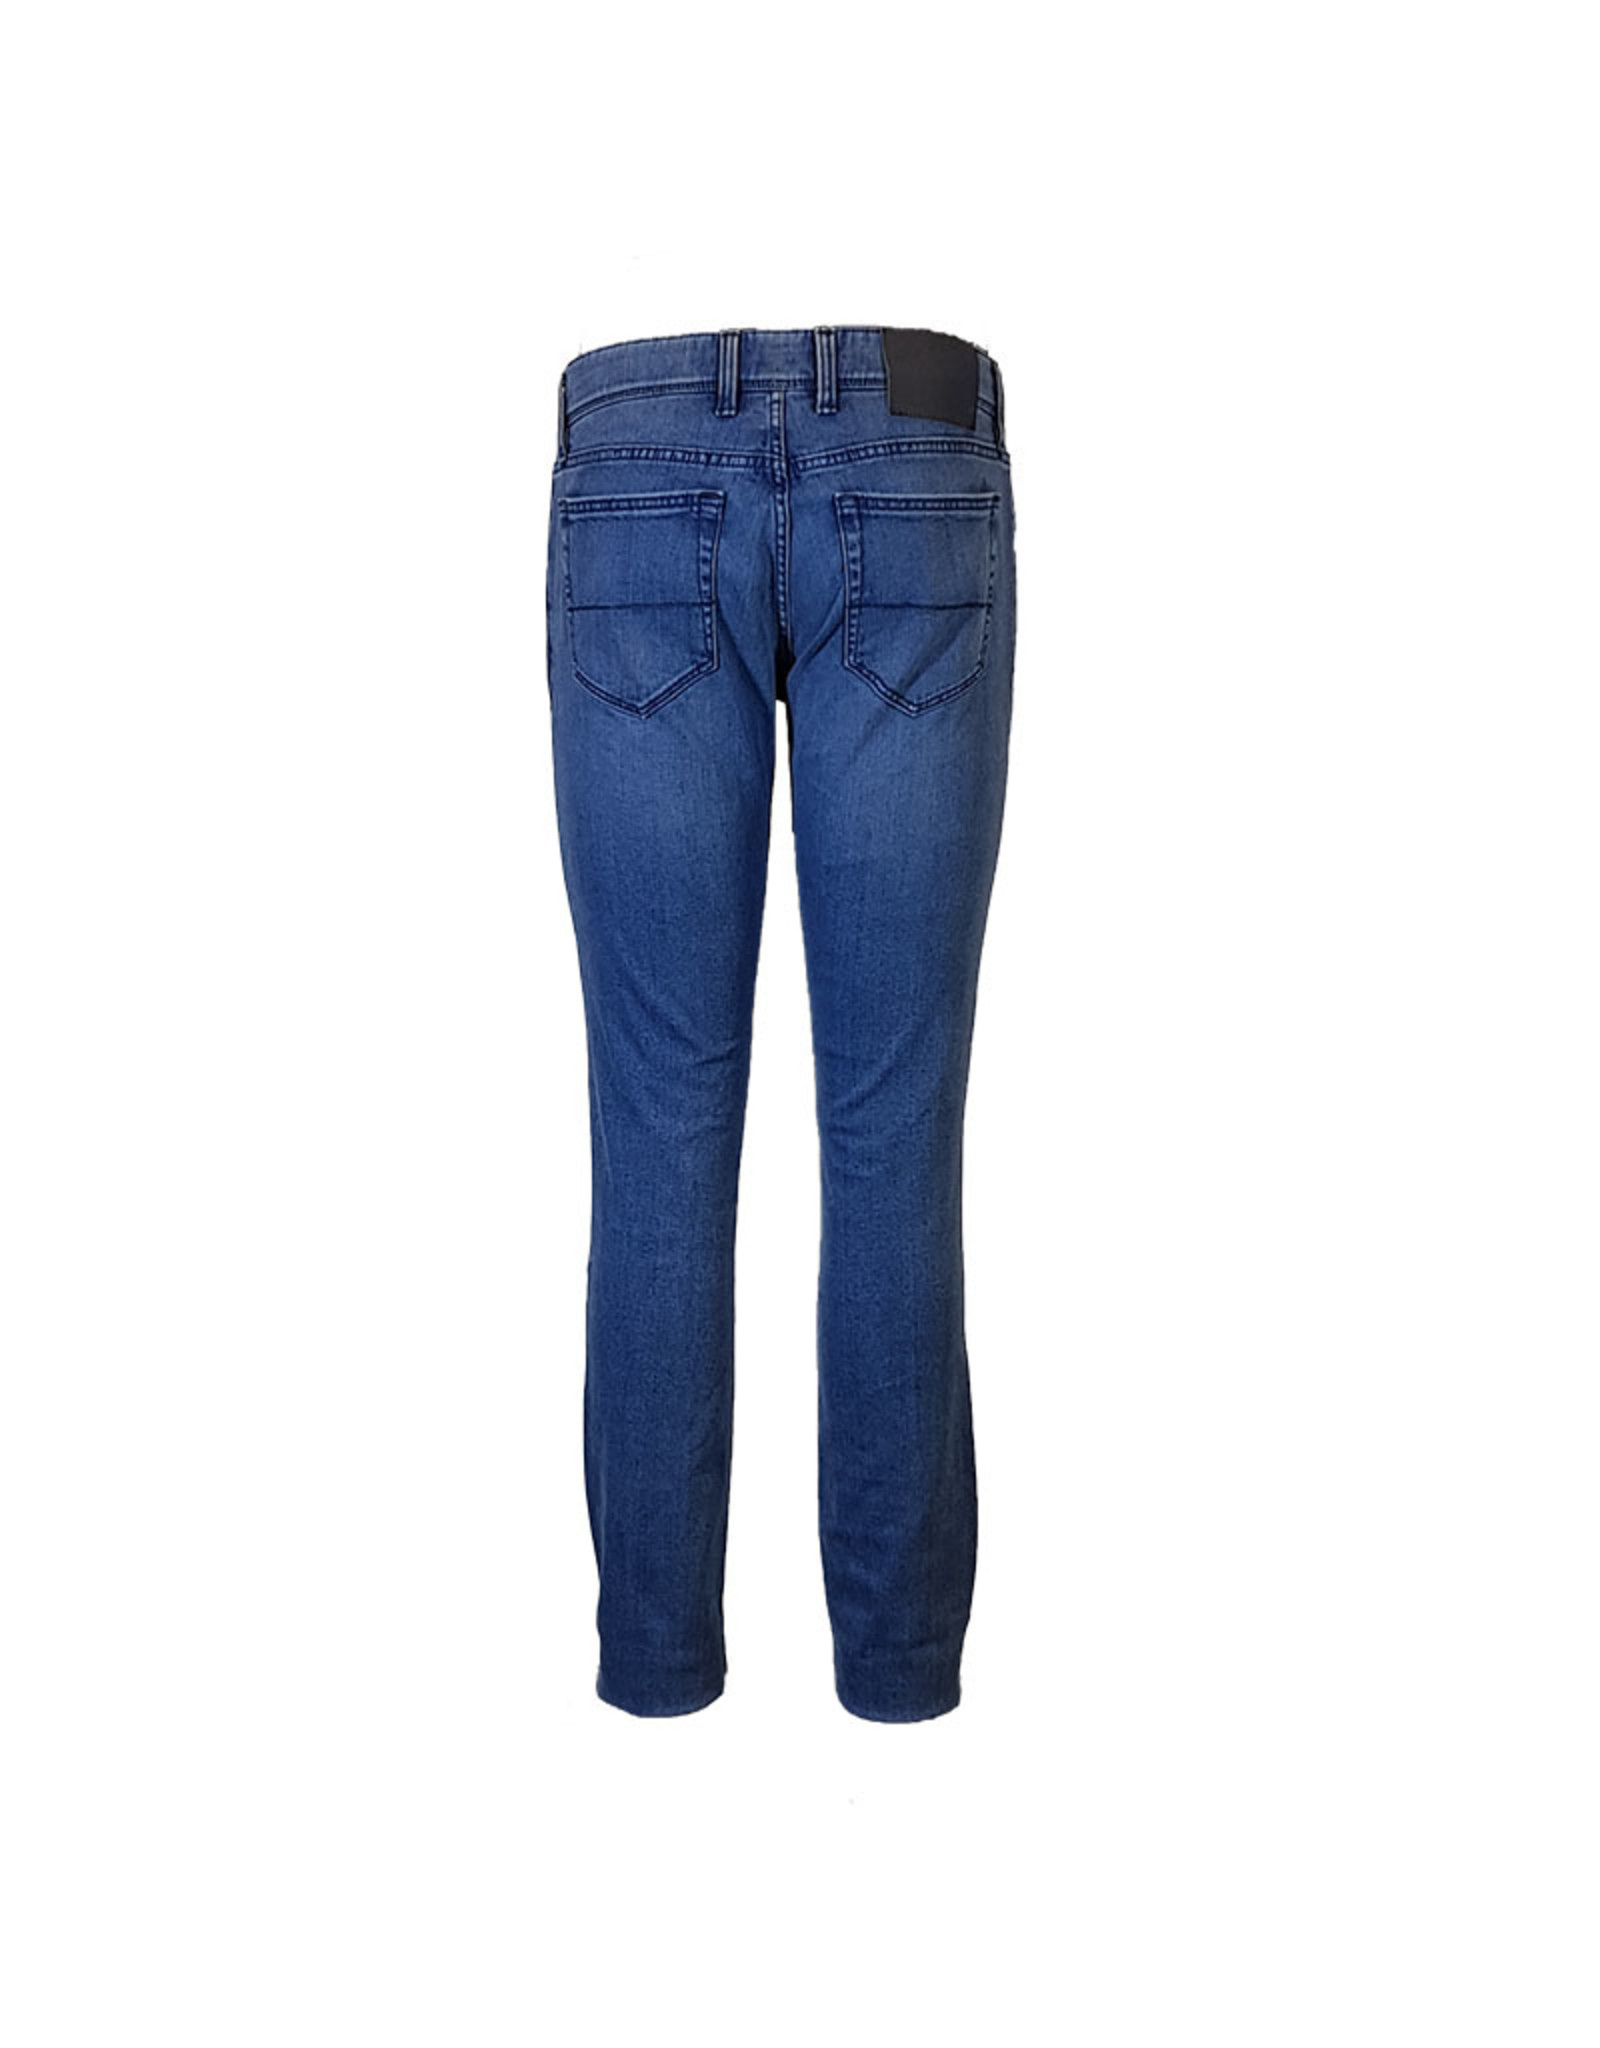 Candiani Candiani jeans light blue 2401